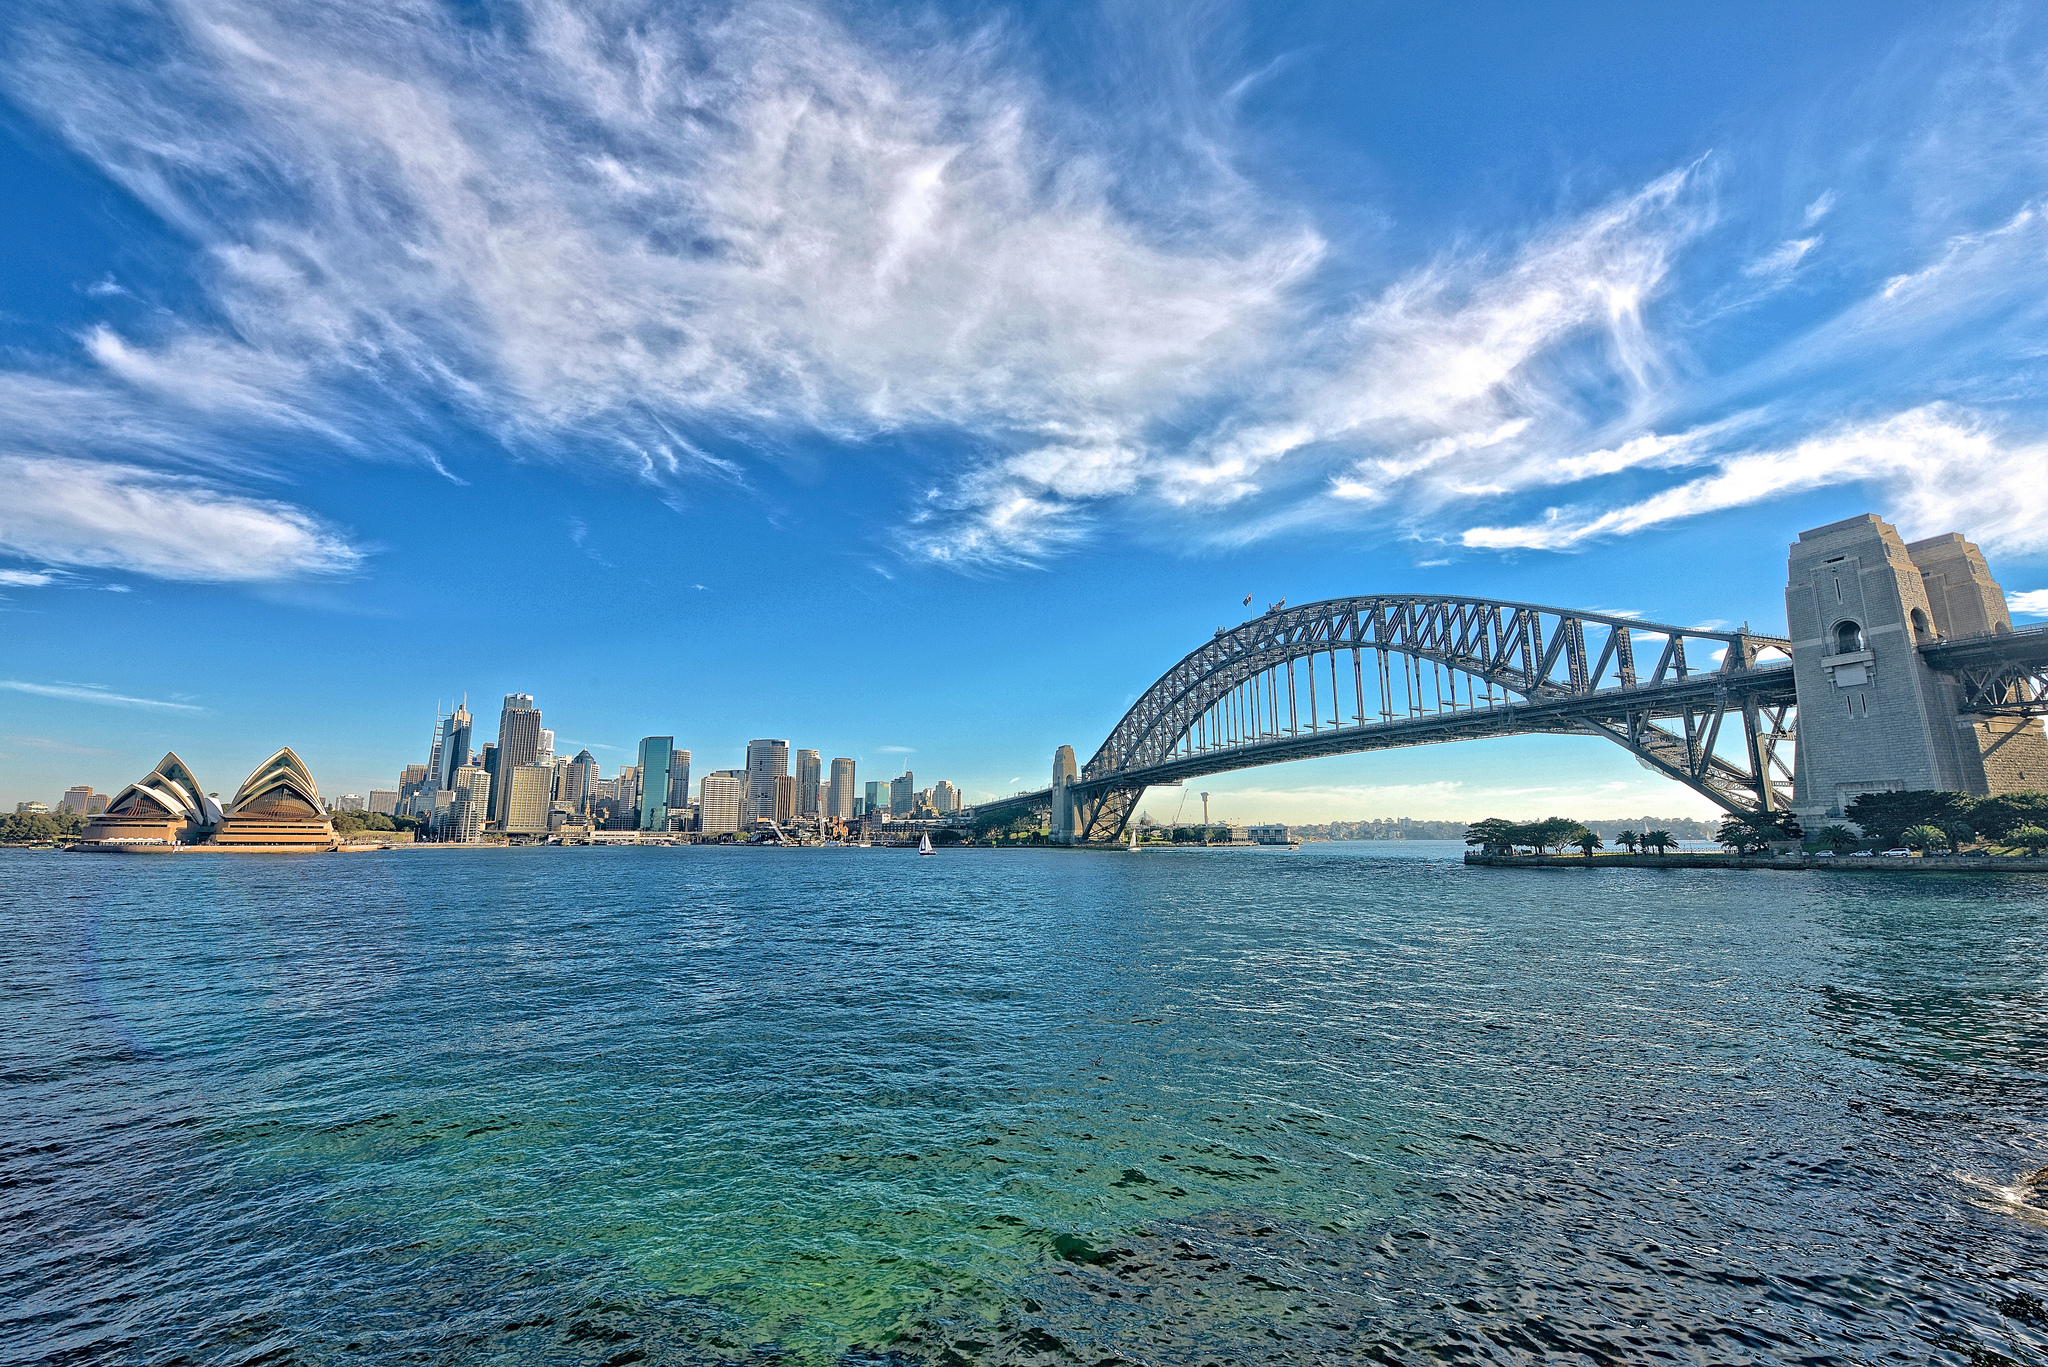 """Sydney"" by Jason Tong via Flickr Creative Commons"